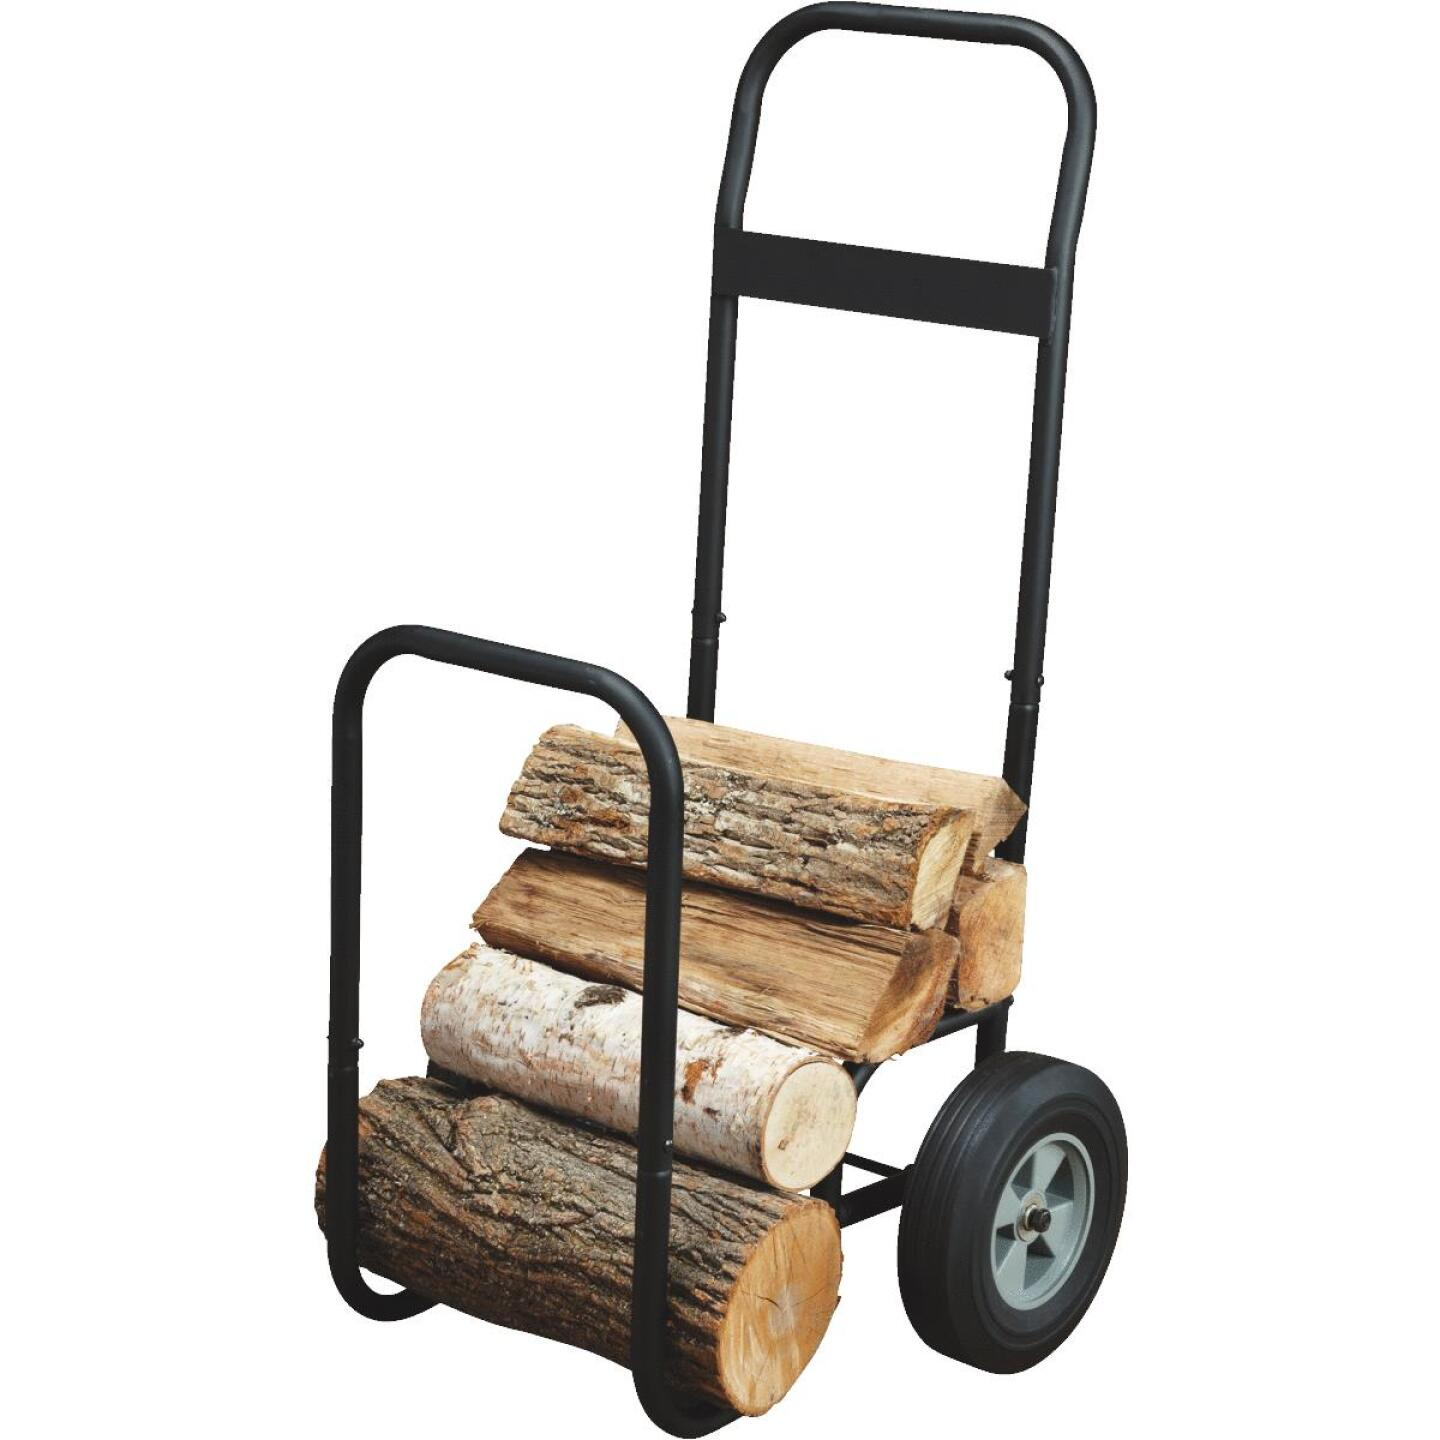 Home Impressions 21 In. W. x 40-1/2 In. H. Steel Log Cart Image 4